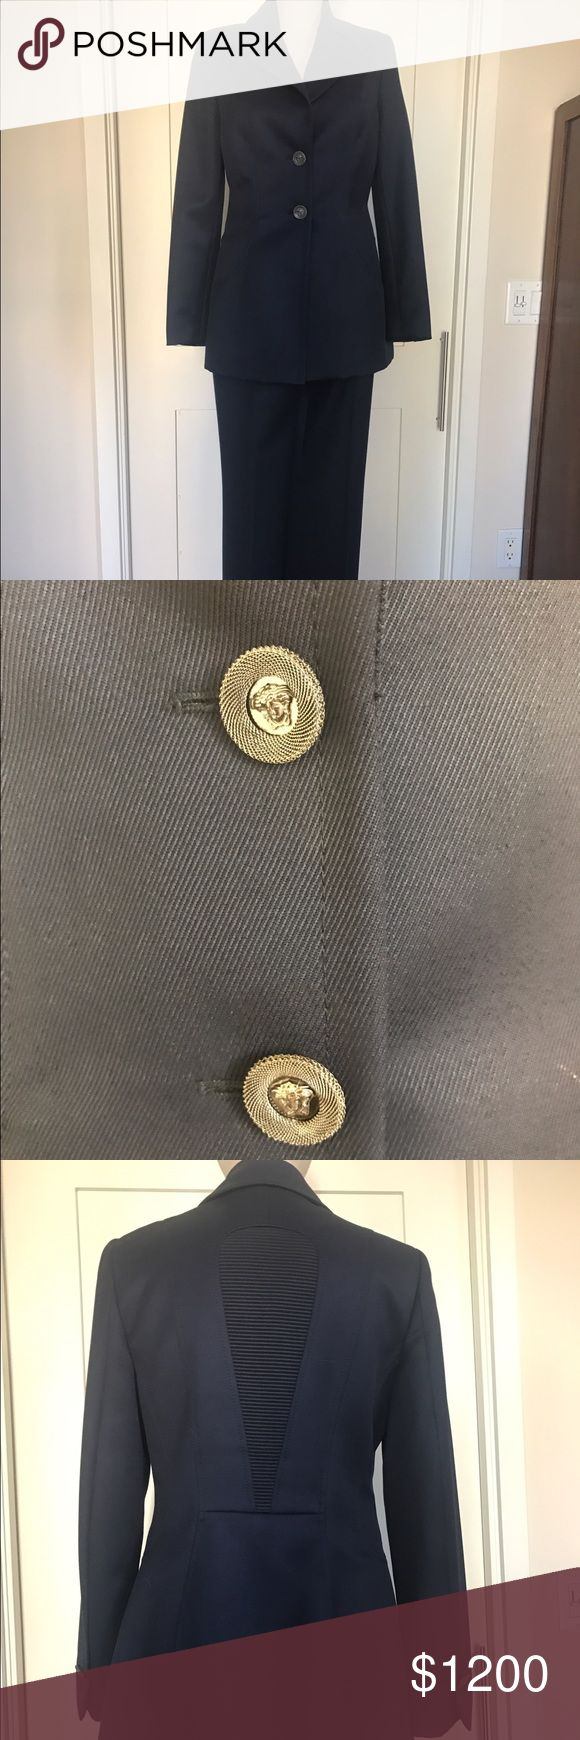 Midnight Blue Versace Suit -s42 Check out this stunning Versace pant suit. Both the Jacket and the pants are size 42. The buttons are silver. They look old in the photo for some reason. I purchased this at Nordstrom about five years ago, wore it twice, and then, darn it, I gained weight. So it has been nestled in my closet for the last five years. This beauty cost me $3500. But I'm no longer a size 42. Dang! And so I'm selling it here. Hopefully someone will love it as much as I did the few…